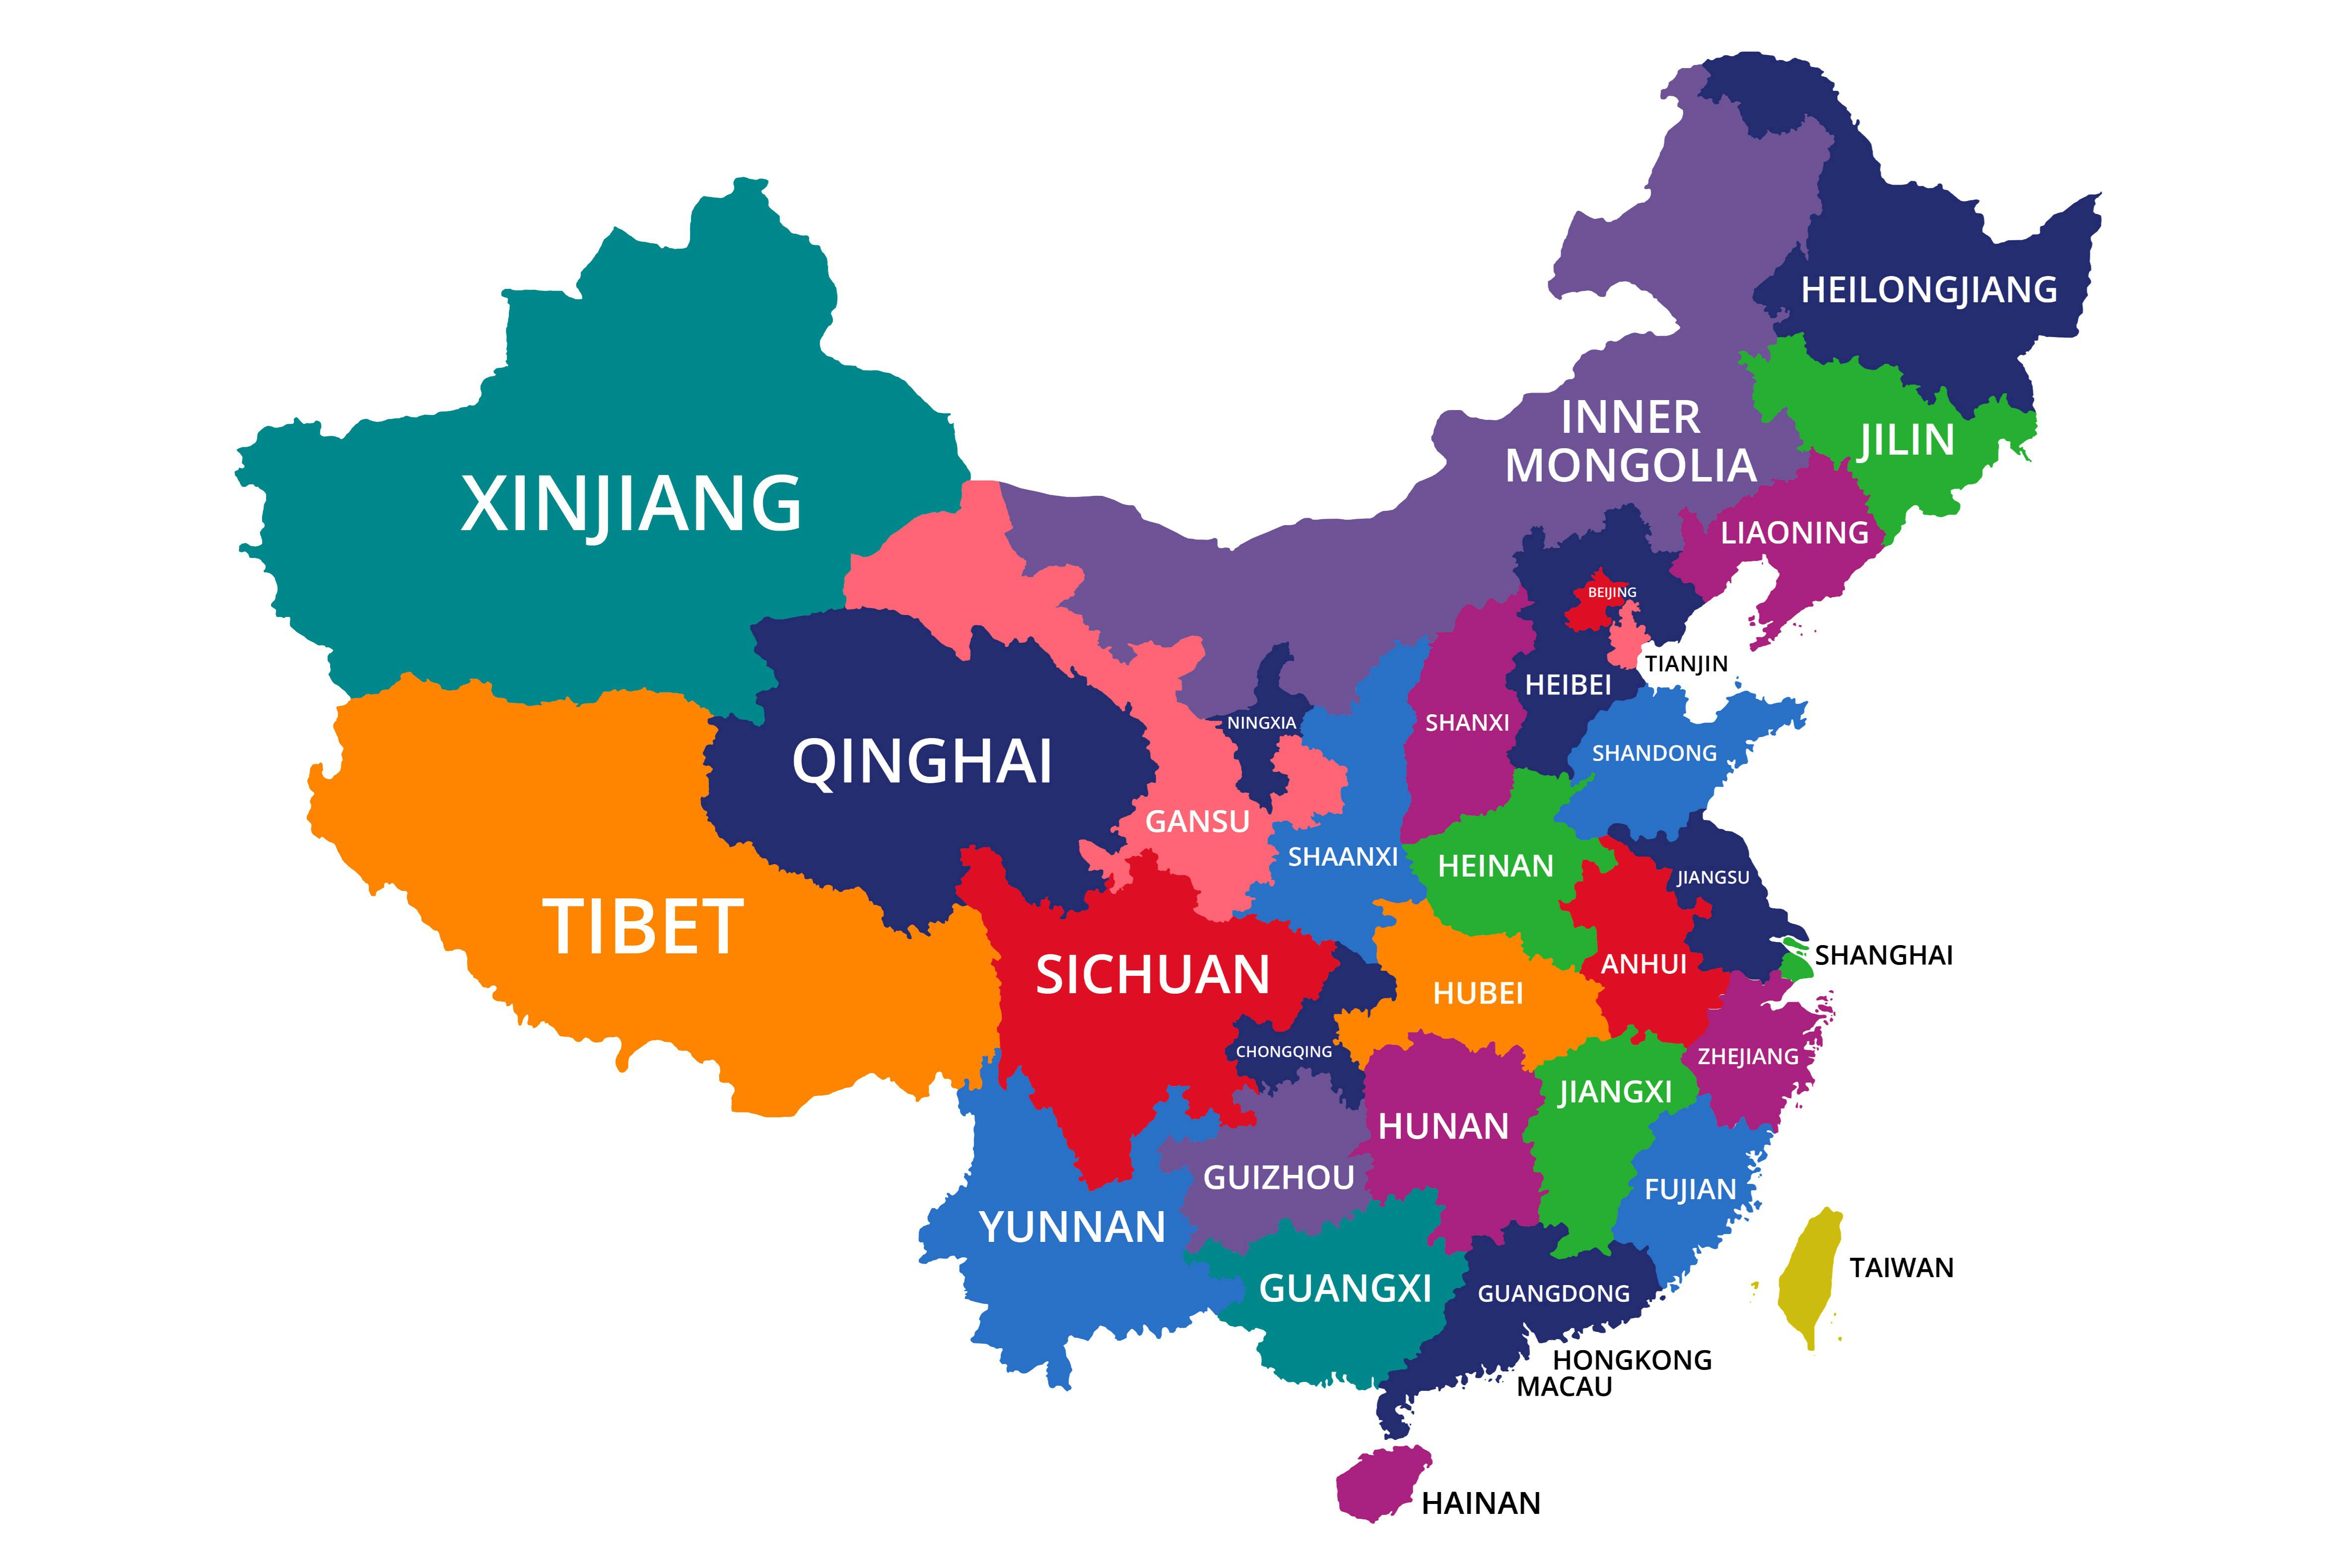 The 23 Provinces In The Country Of China